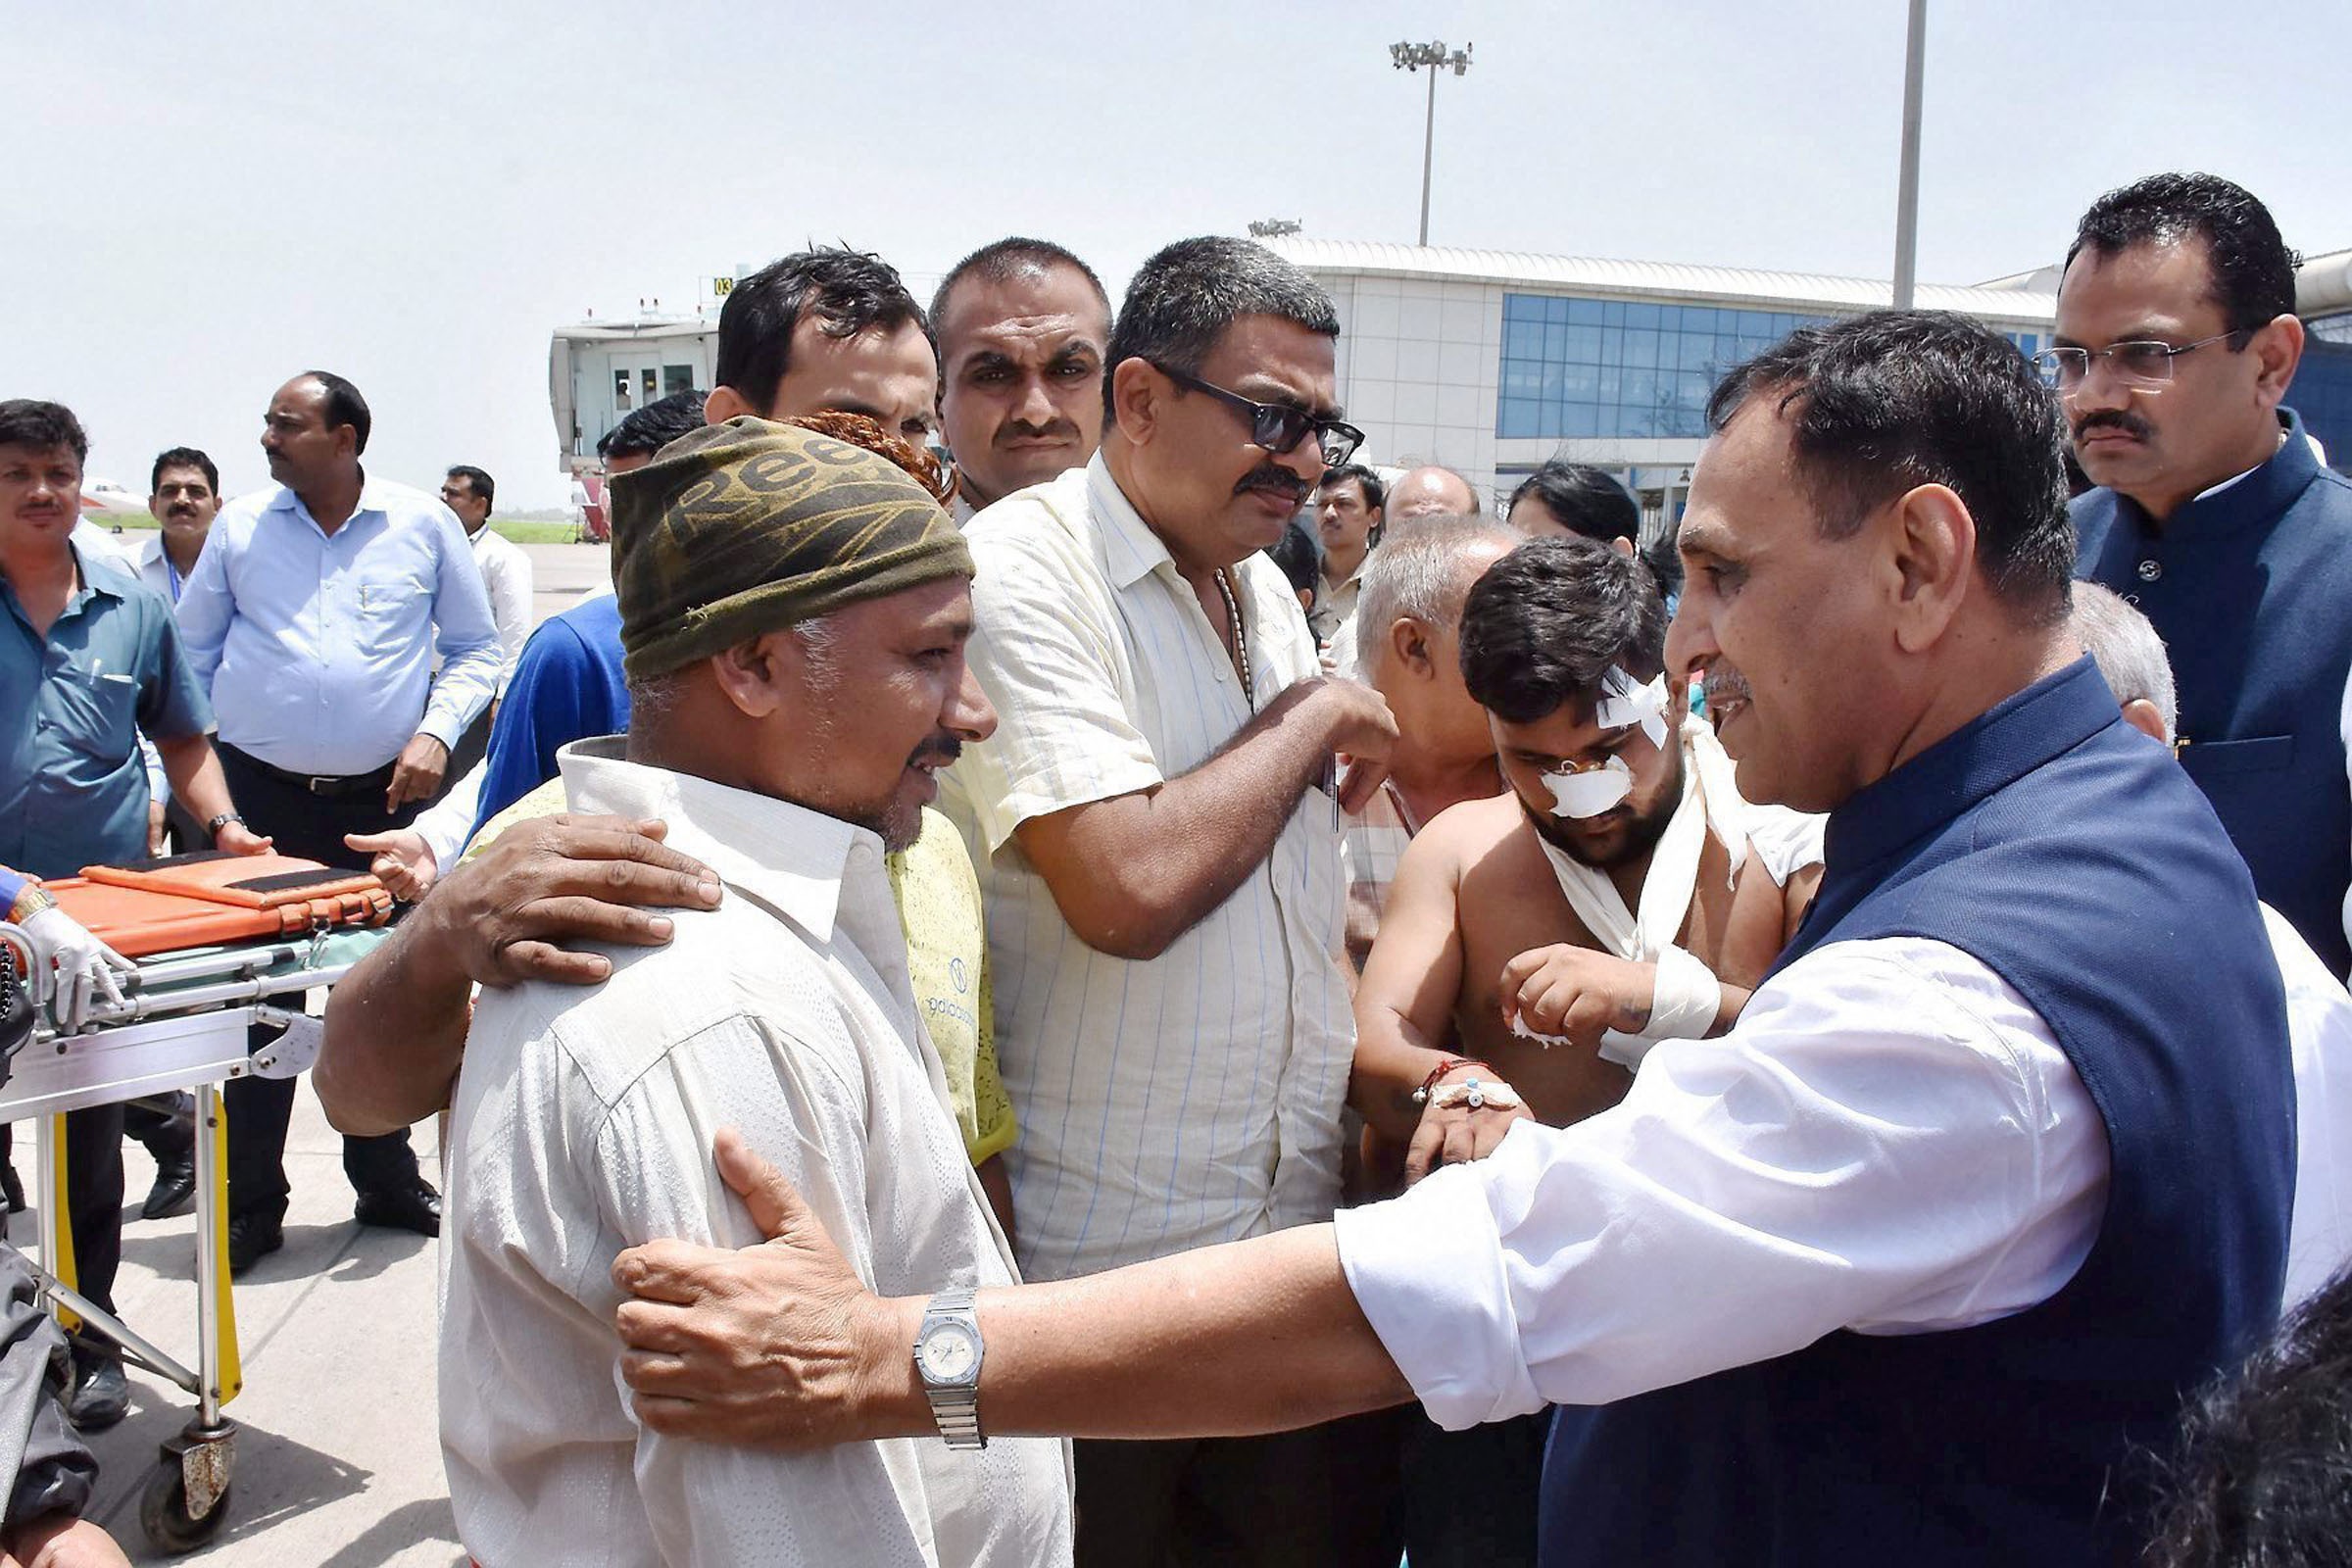 Surat: Gujarat Chief Minister Vijay Rupani meeting with the Amarnath pilgrims, injured in the terror attack in Jammu and Kashmir, after they were brought to the Surat airport in an IAF plane on Tuesday. PTI Photo